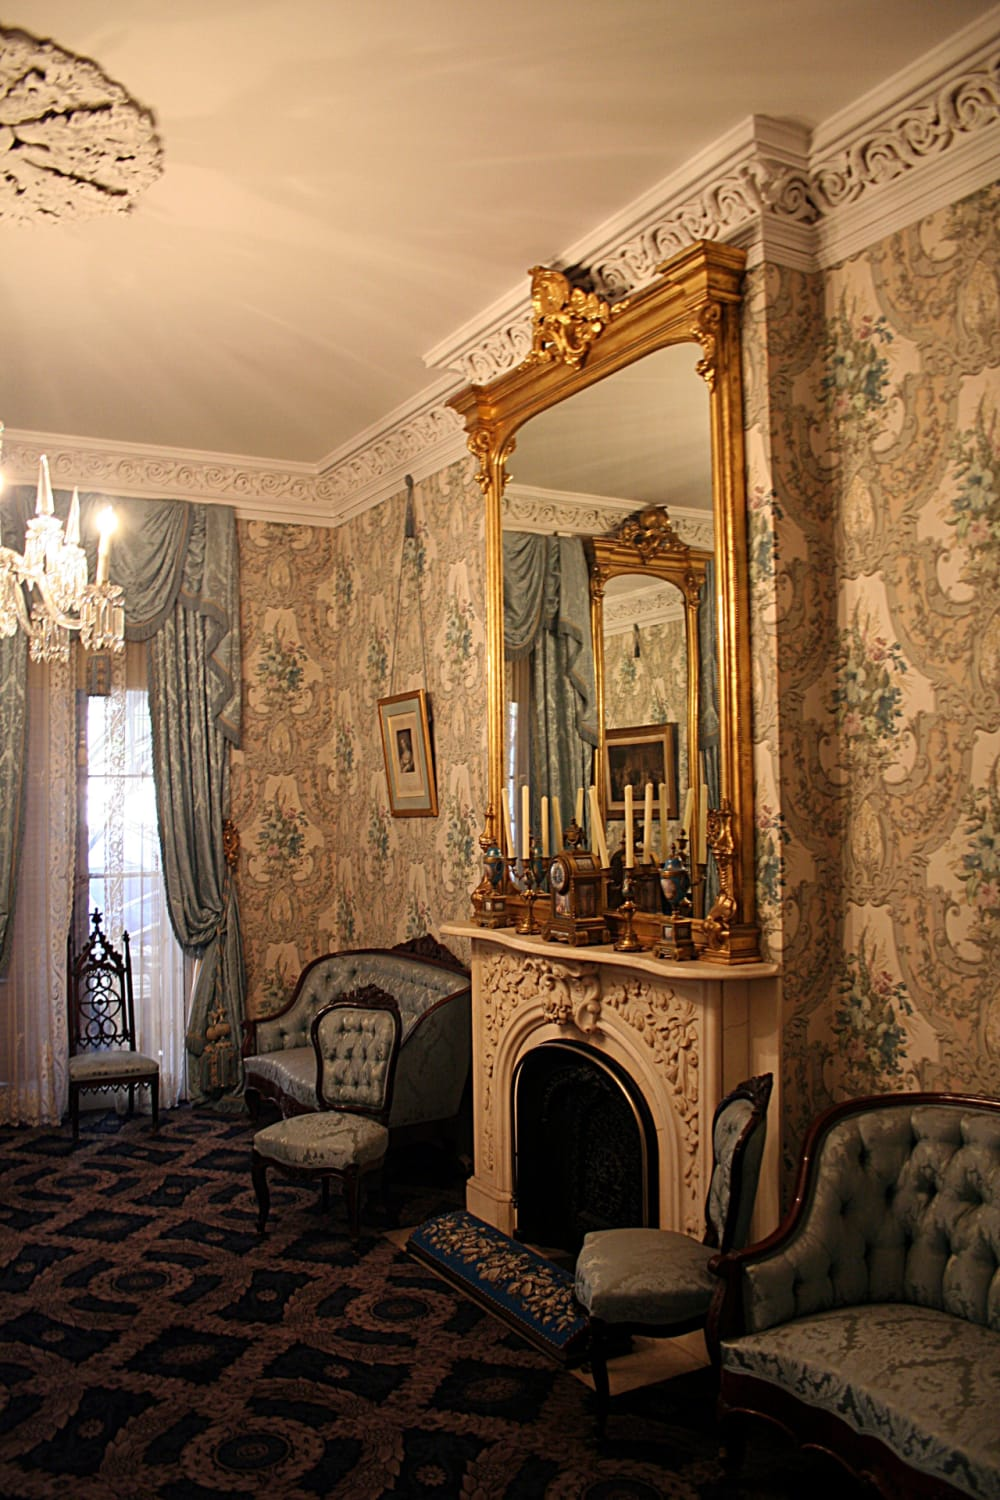 2. The Sitting Room at TR's Childhood Home